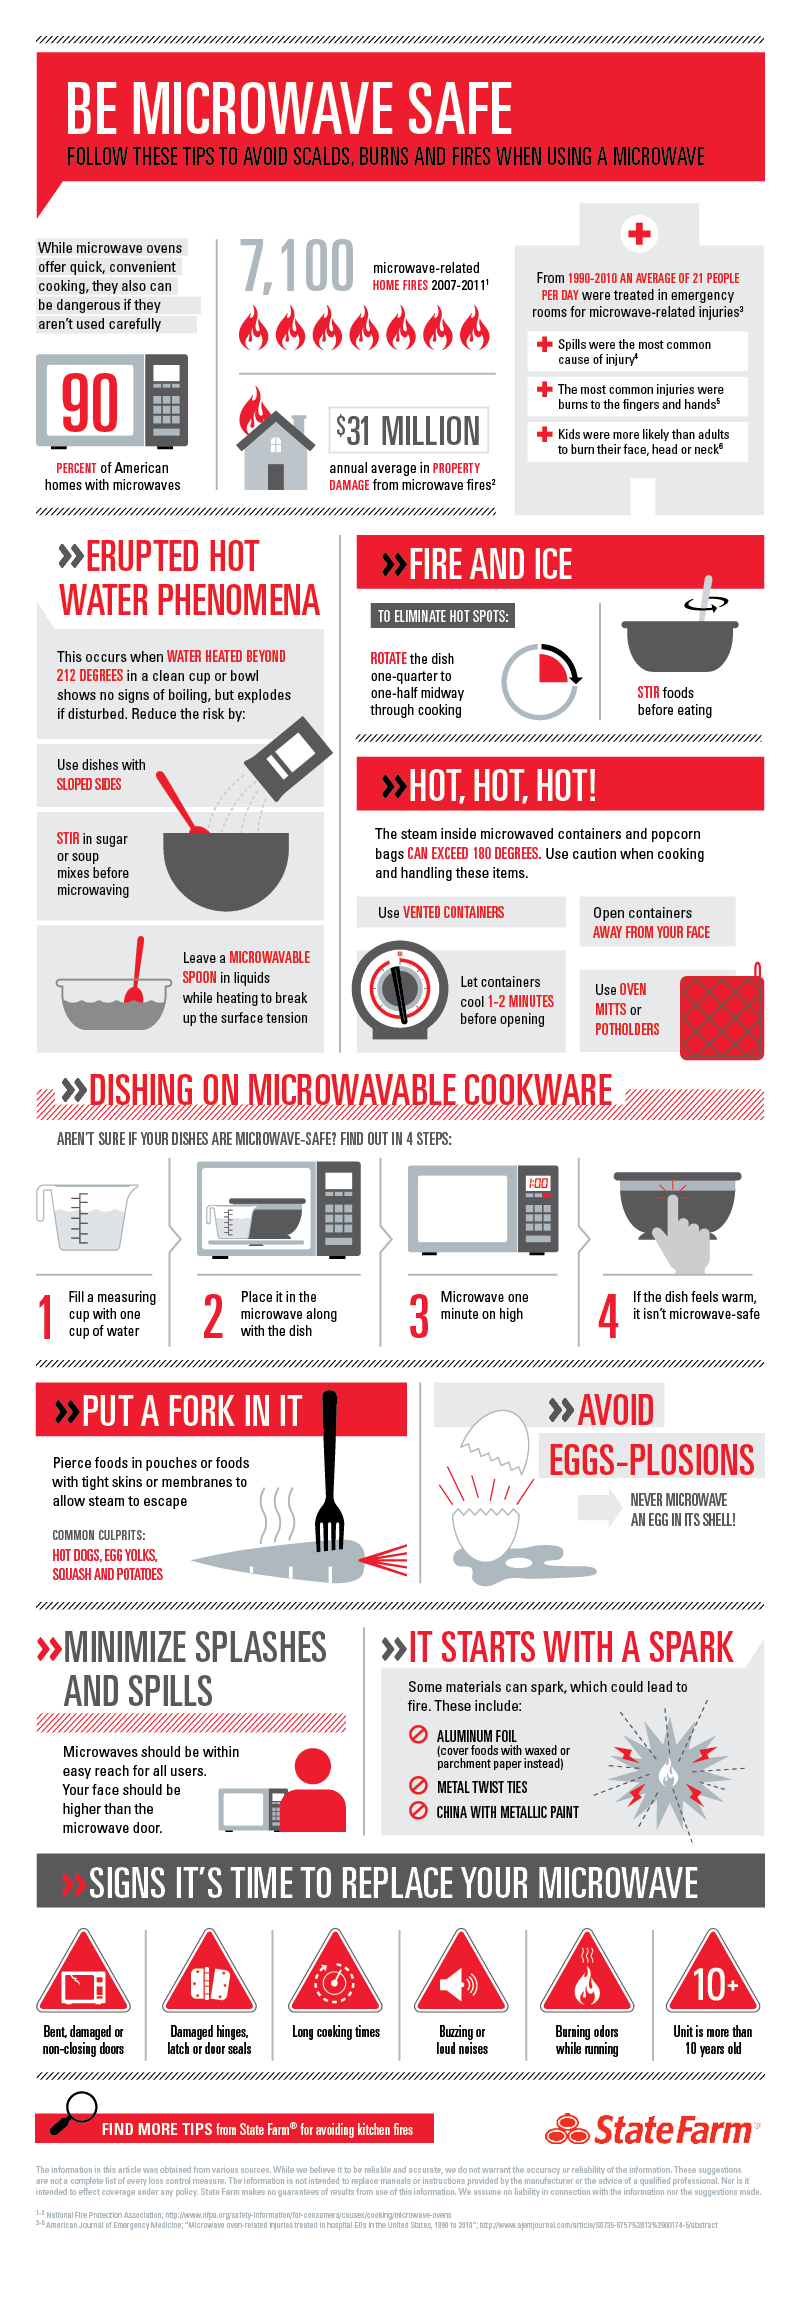 Facts on microwave safety